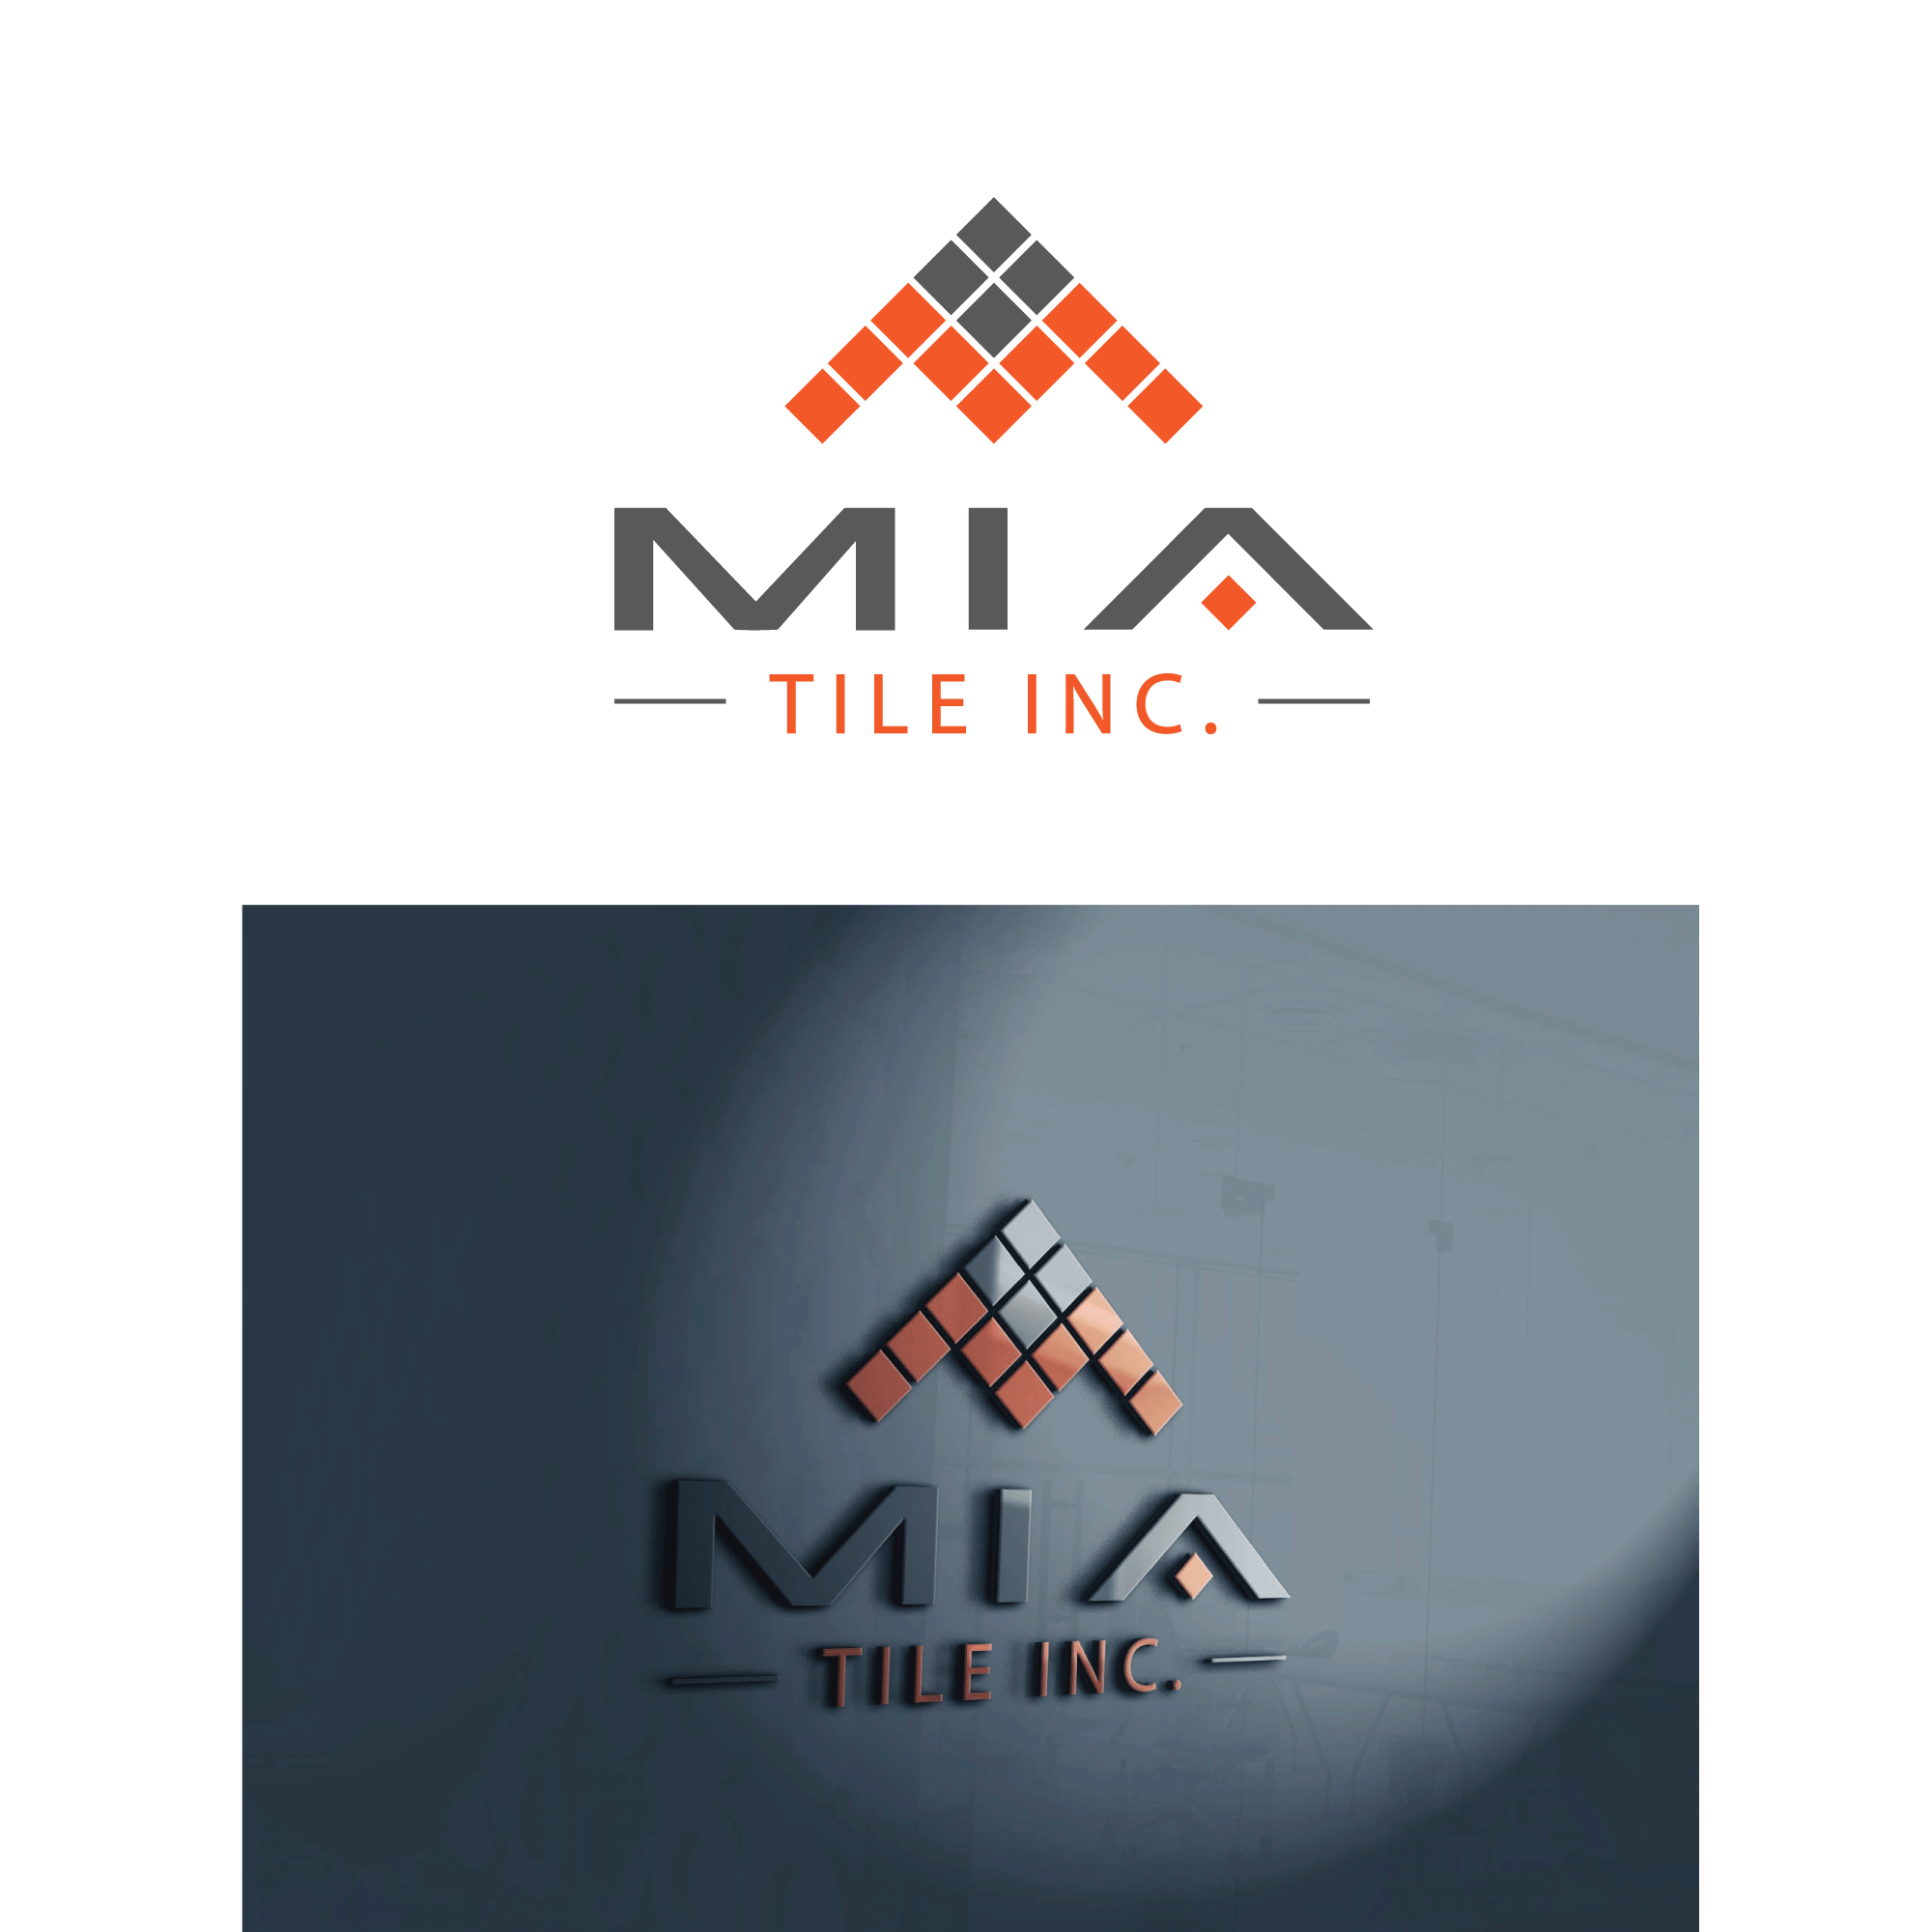 logo design contests fun logo design for mia tile inc design no rh hiretheworld com tile logon tile logon